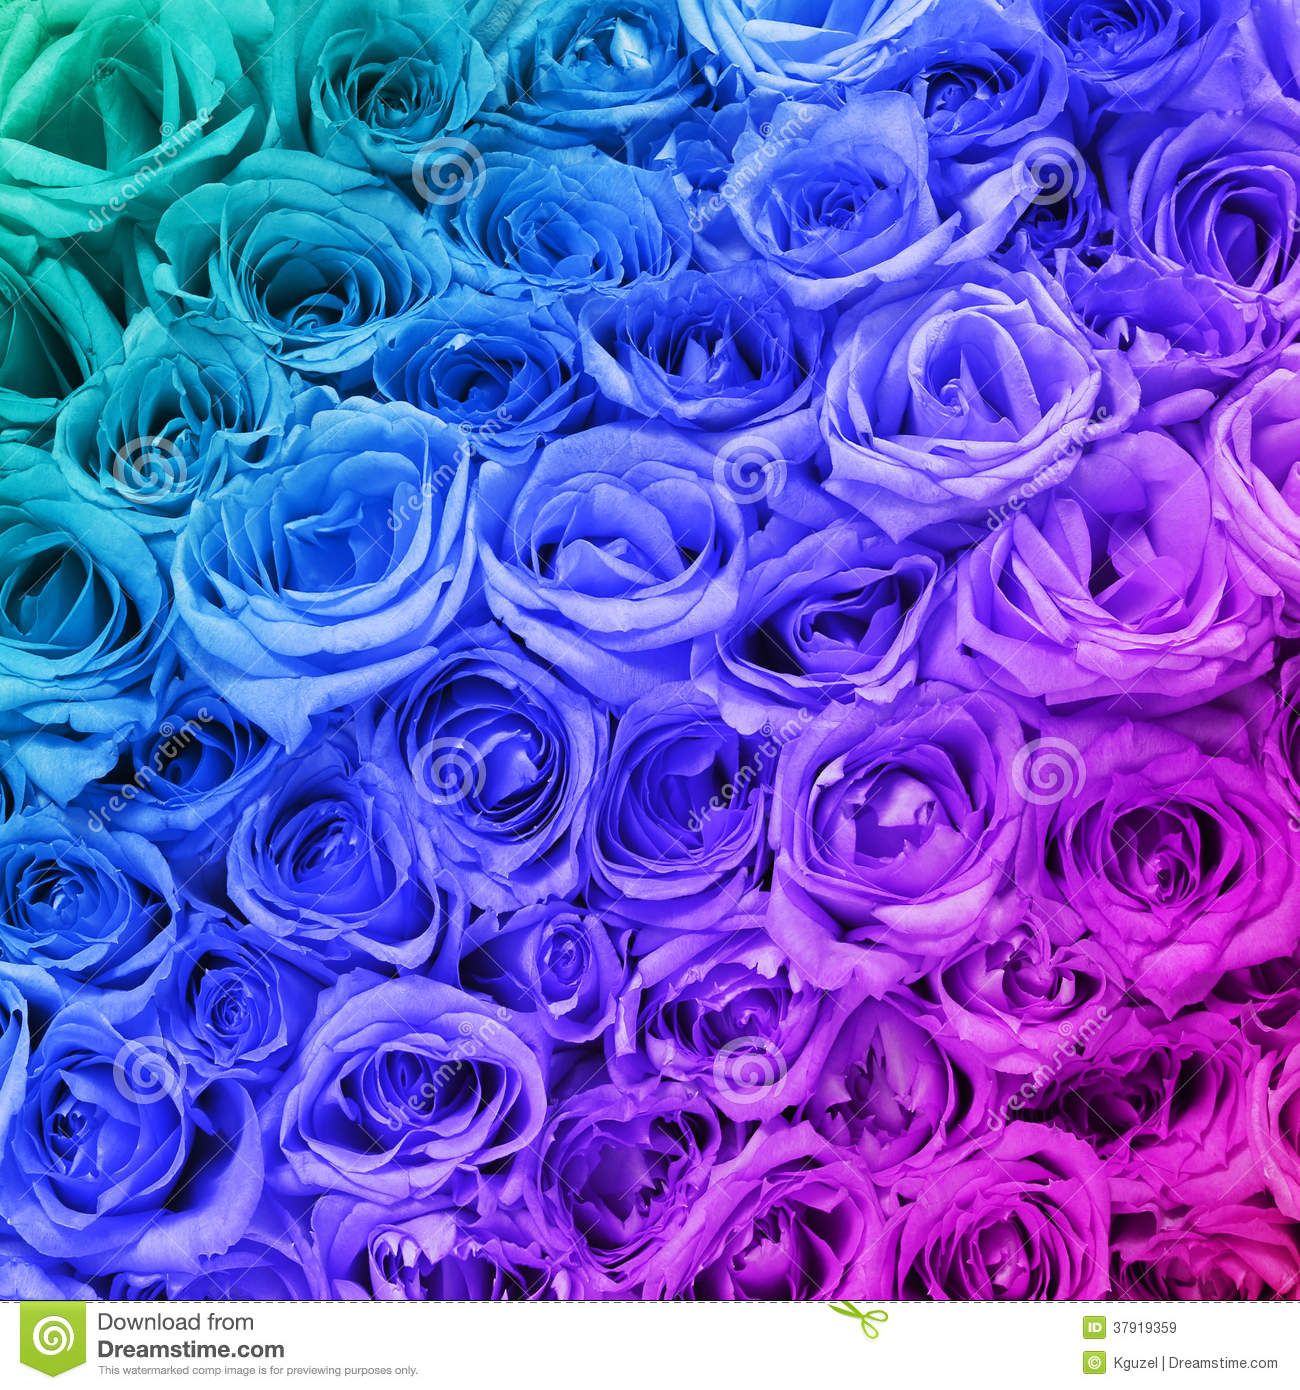 Colorful roses background royalty free stock images for Colorful roses images